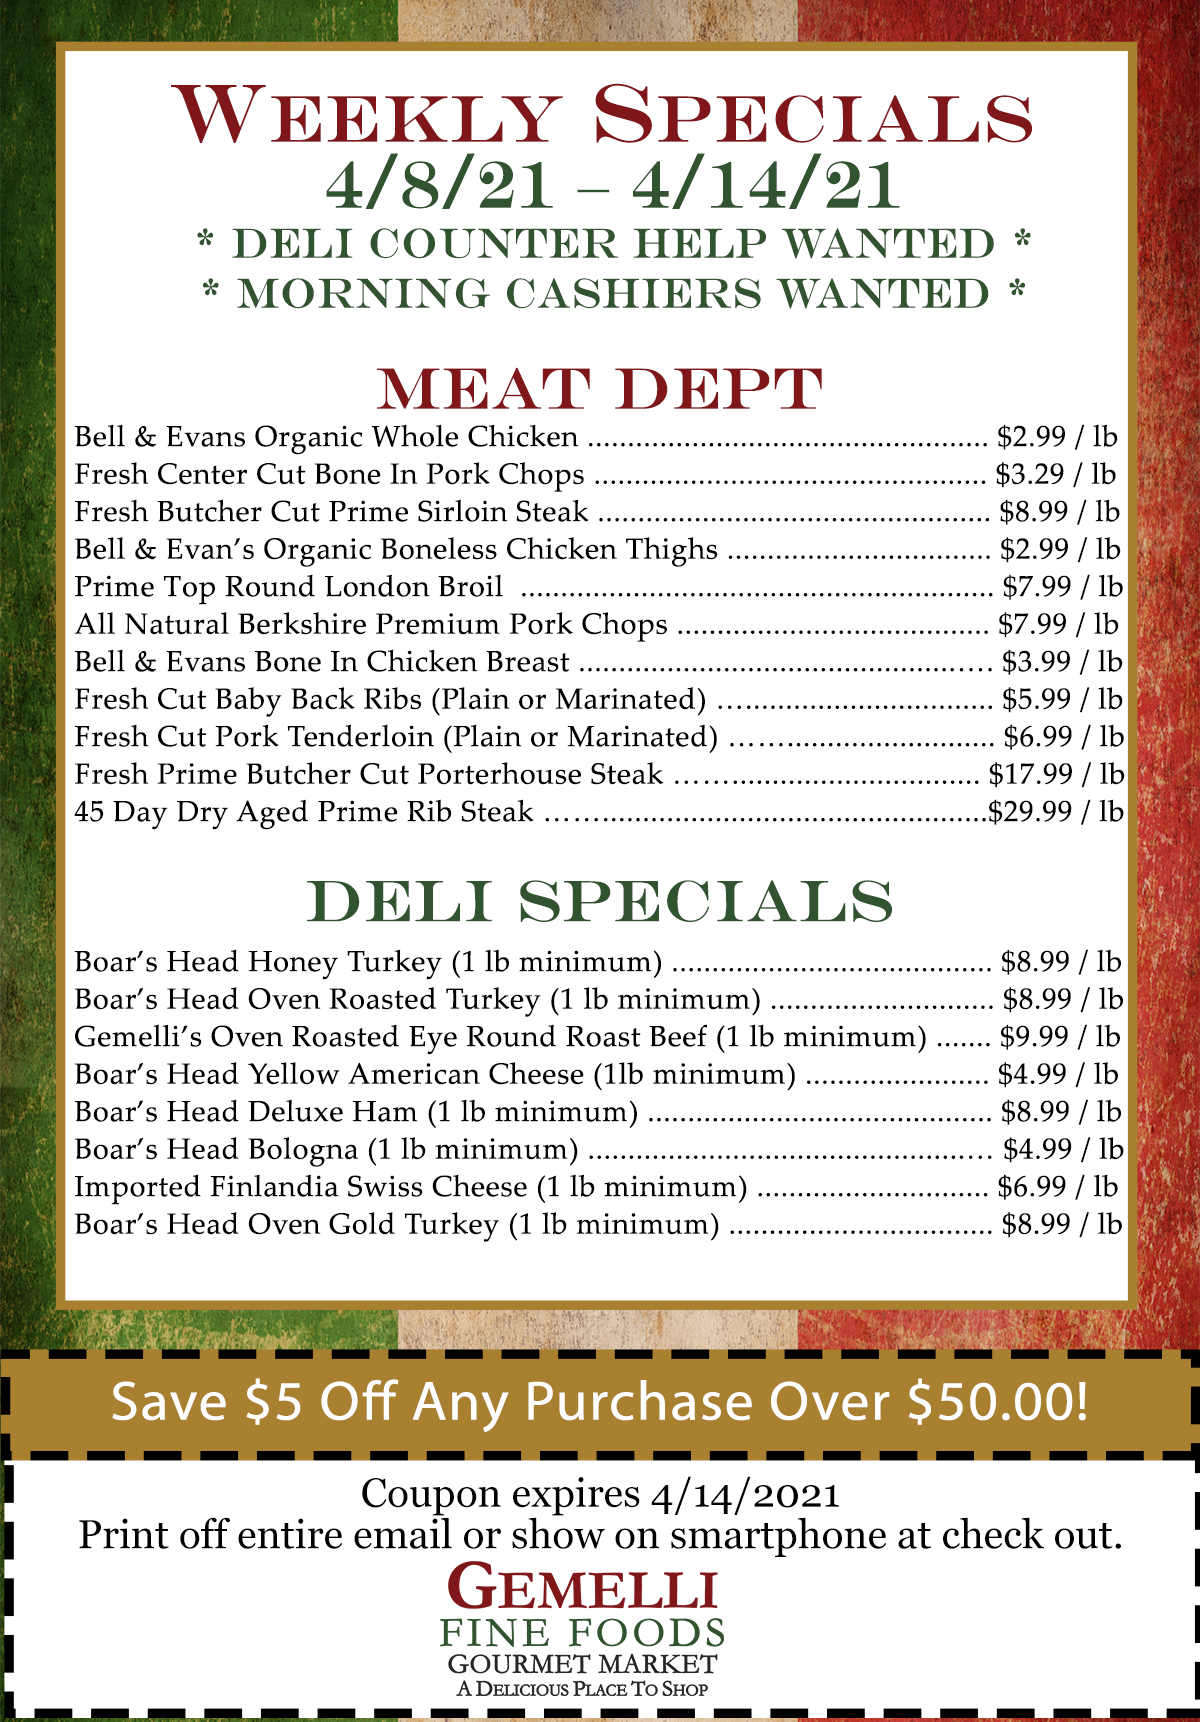 "WEEKLY SALES 4/8/21 – 4/14/21 Deli Counter Help Wanted &  Morning Cashiers Wanted   Meat Specials: Bell & Evans Organic Whole Chicken … $ 2.99 / lb  Fresh Center Cut Bone In Pork Chops … $ 3.29 / lb Fresh Butcher Cut Prime Sirloin Steak … $ 8.99 / lb Bell & Evans Organic Boneless Chicken Thighs … $ 2.99 / lb Prime Top Round London Broil … $ 7.99 / lb All Natural Berkshire Premium Pork Chops … $ 7.99 / lb Bell & Evans Bone In Chicken Breast … $ 3.99 / lb Fresh Cut Baby Back Ribs (Plain or Marinated) … $ 5.99 / lb Fresh Cut Pork Tenderloin (Plain or Marinated) … $ 6.99 / lb  Fresh Prime Butcher Cut Porterhouse Steak… $ 17.99 / lb 45 Day Dry Aged Prime Rib Steak … $ 29.99 / lb   Deli Specials: 	Boar's Head Honey Turkey … $ 8.99 / lb (1 lb minimum) Boar's Head Oven Roasted Turkey … $ 8.99 / lb (1 lb minimum) Gemelli""s Oven Roasted Eye Round Roast Beef (1 lb minimum) … $ 9.99 /lb Boars Head Yellow American Cheese … $ 4.99 / lb (1 lb minimum) Boar's Head Deluxe Ham … $ 8.99 / lb (1 lb minimum) Boar's Head Bologna … $ 4.99 / lb (1 lb minimum) Imported Finlandia Swiss Cheese … $ 6.99 / lb (1 lb minimum) Boar's Head Oven Gold Turkey … $ 8.99 / lb (1 lb minimum)    Coupon:	$5.00 off any purchase of $50.00 or more (expires April 14, 2021)"